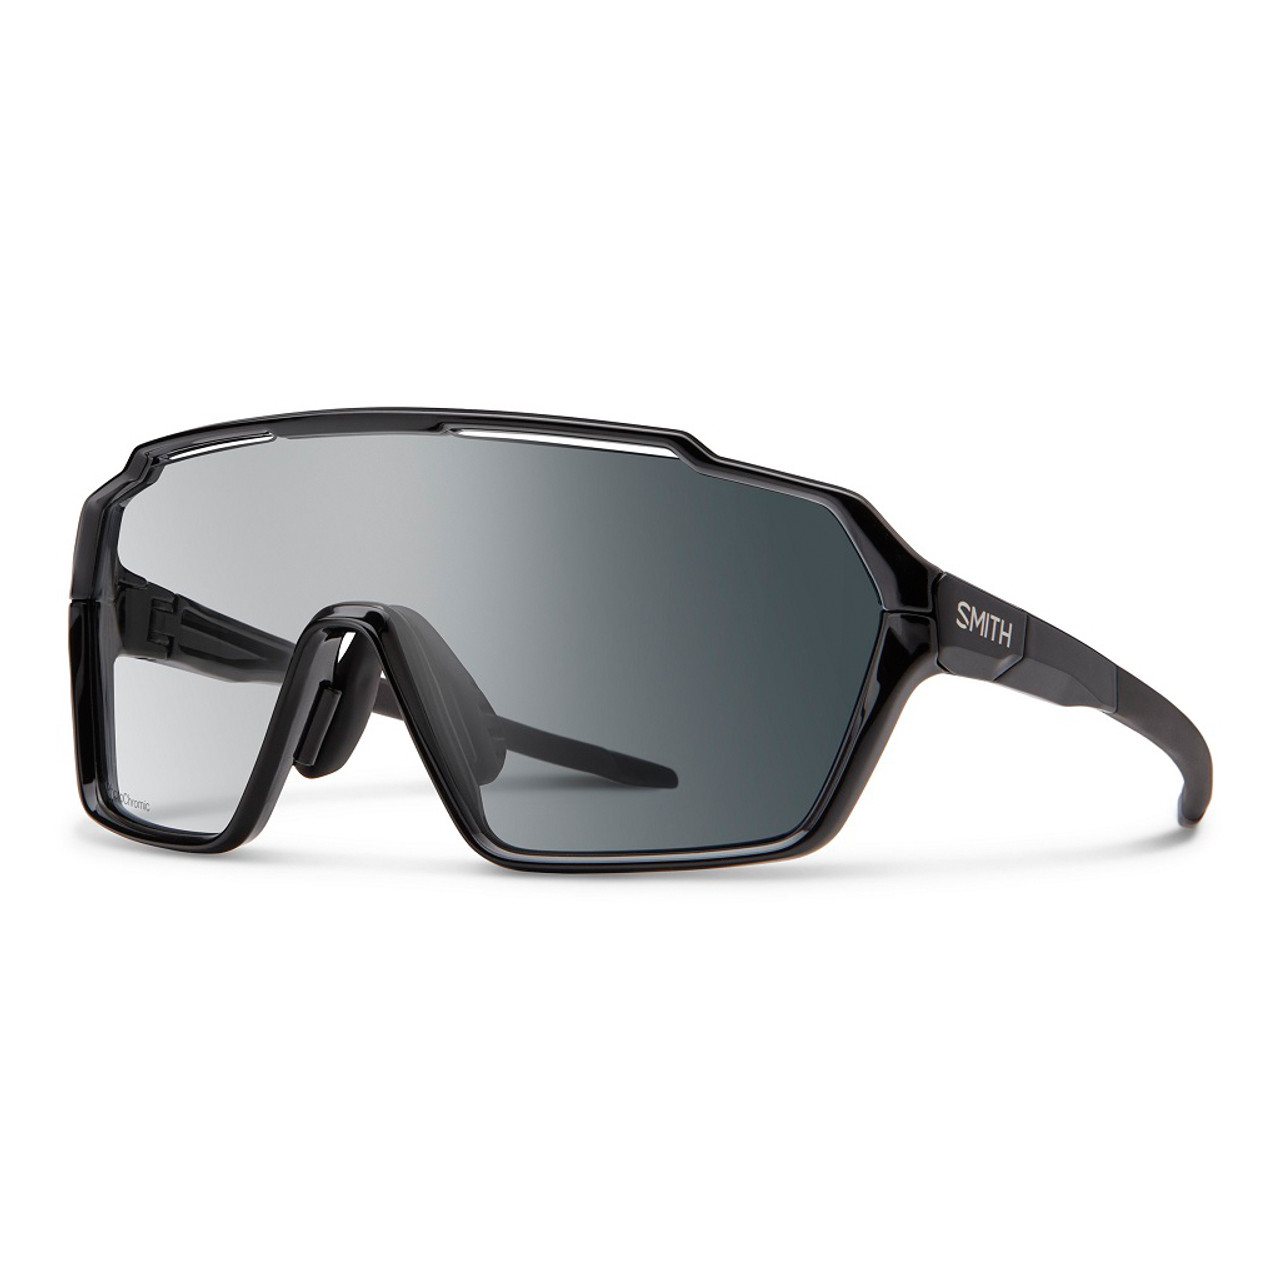 Black w/ Photochromic Clear to Gray - Smith Shift MAG Sunglasses